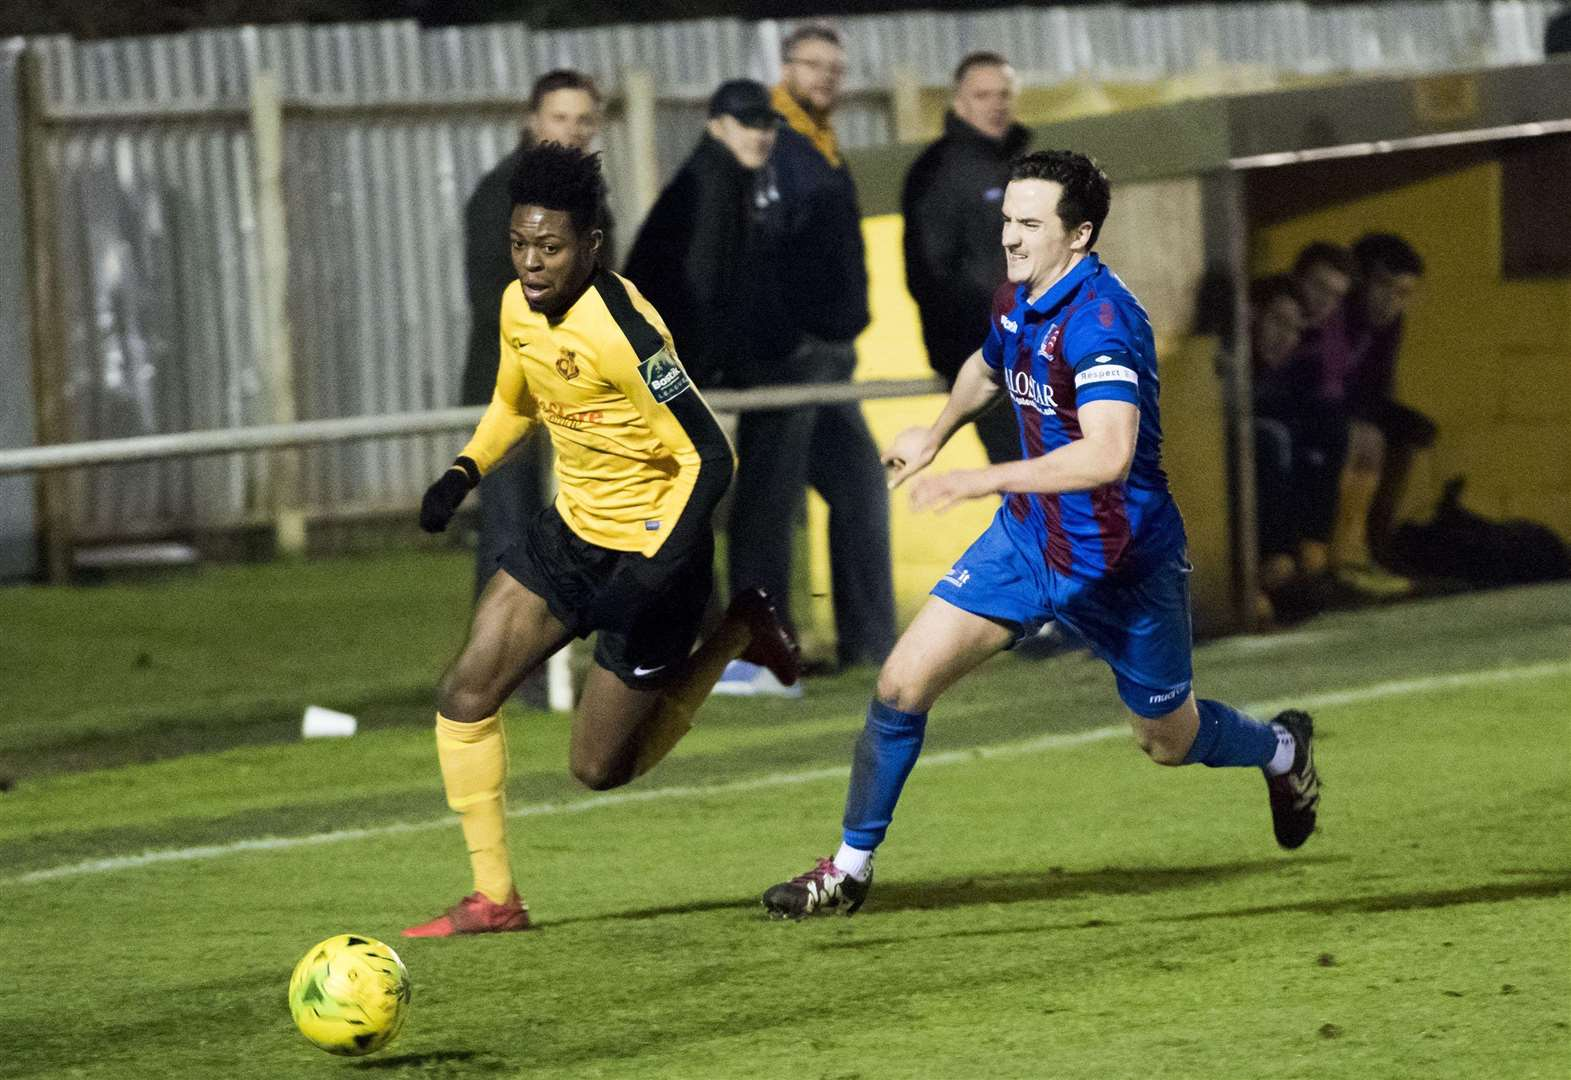 BOSTIK LEAGUE: Ofosu returns to Mildenhall